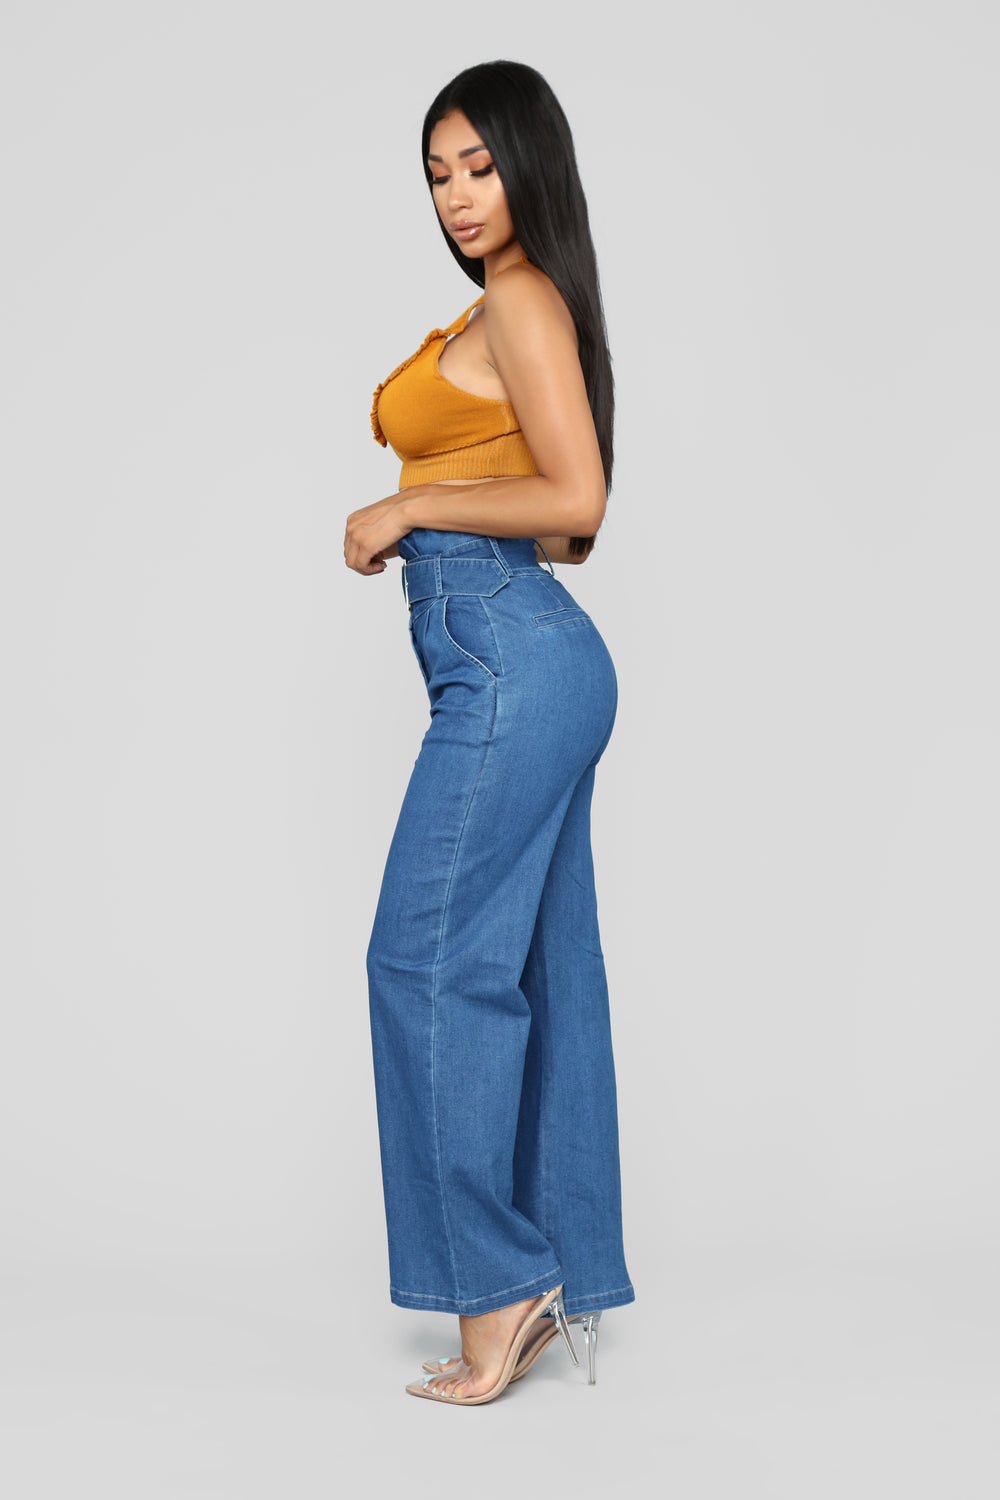 One Kiss Wide Leg Jeans - Medium Blue Wash